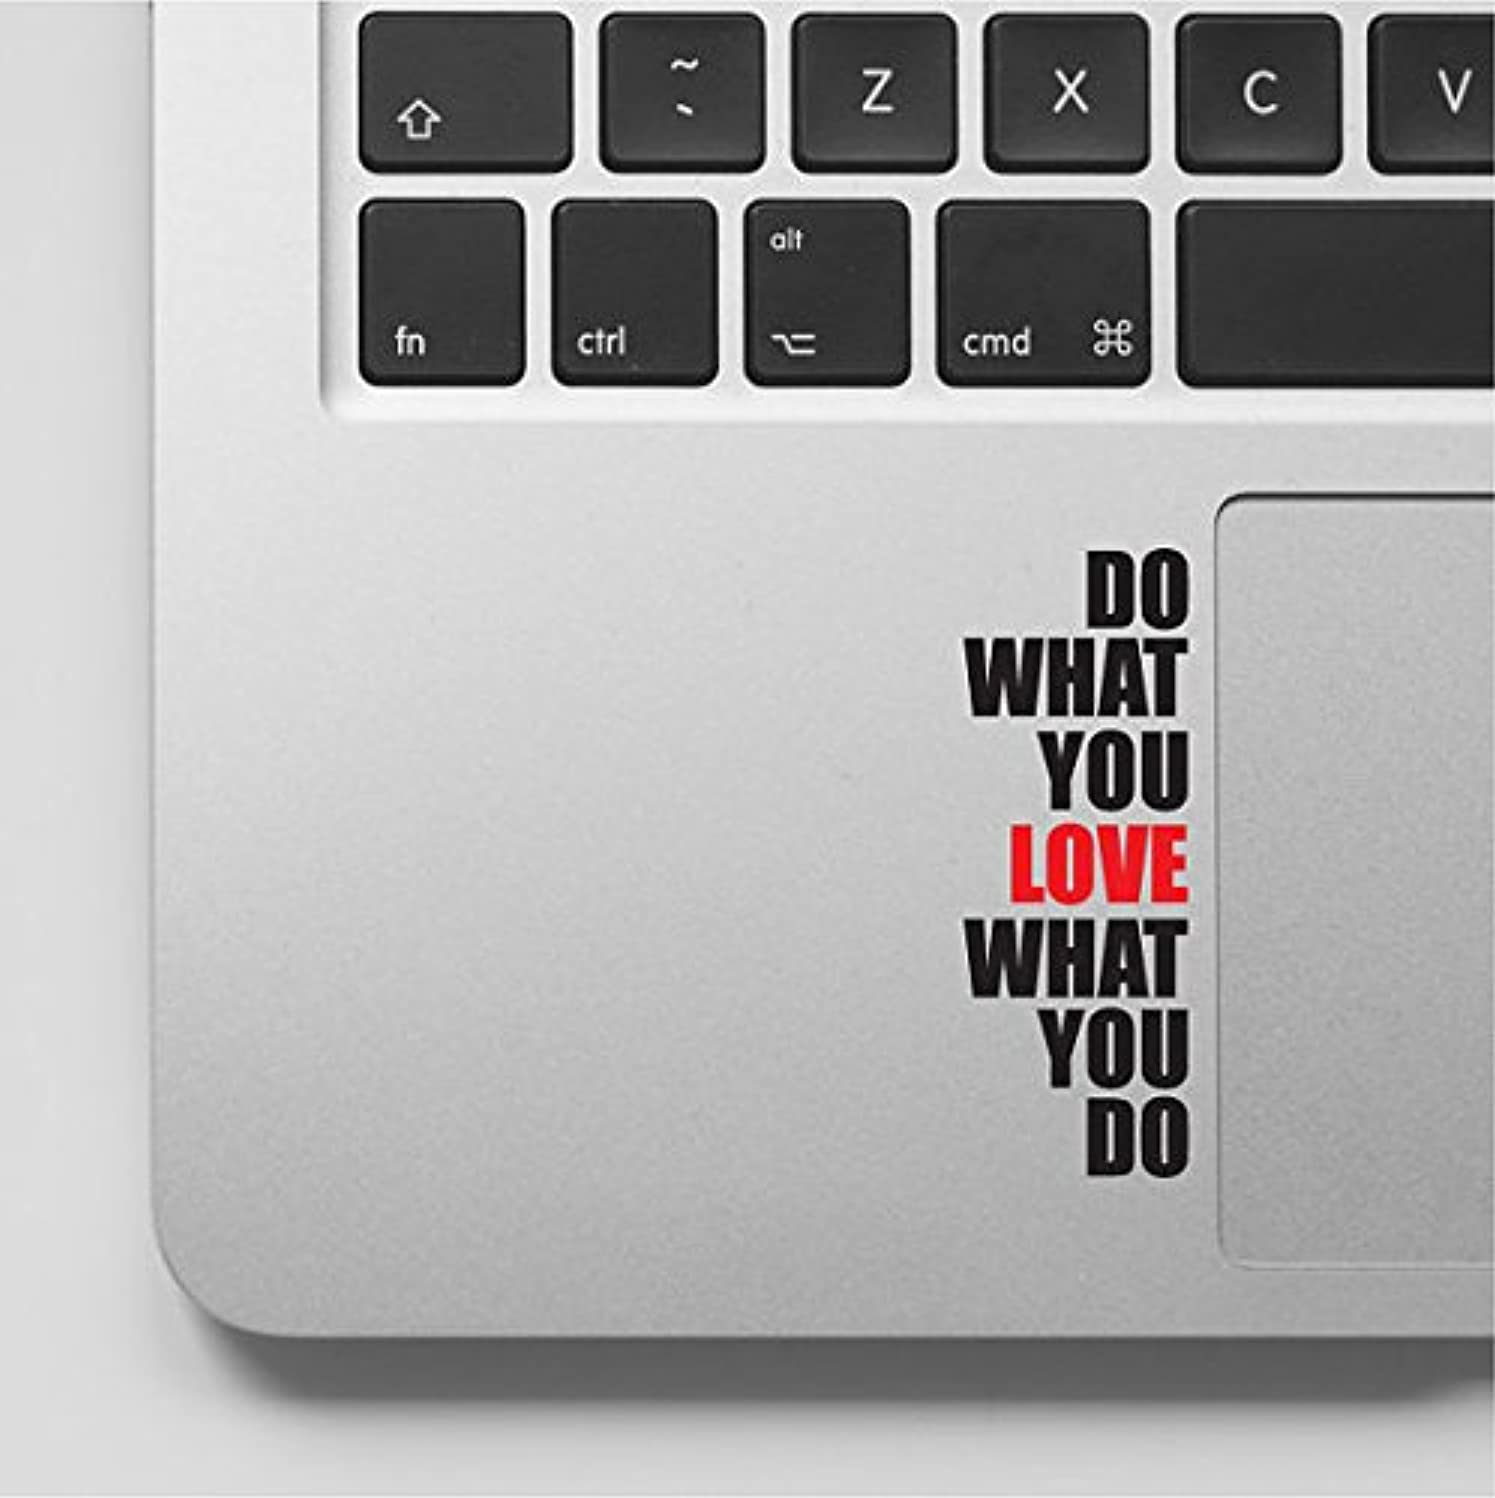 Do what you love Motivational Inspirational Quote Laptop Macbook Sticker Decal - WD-87